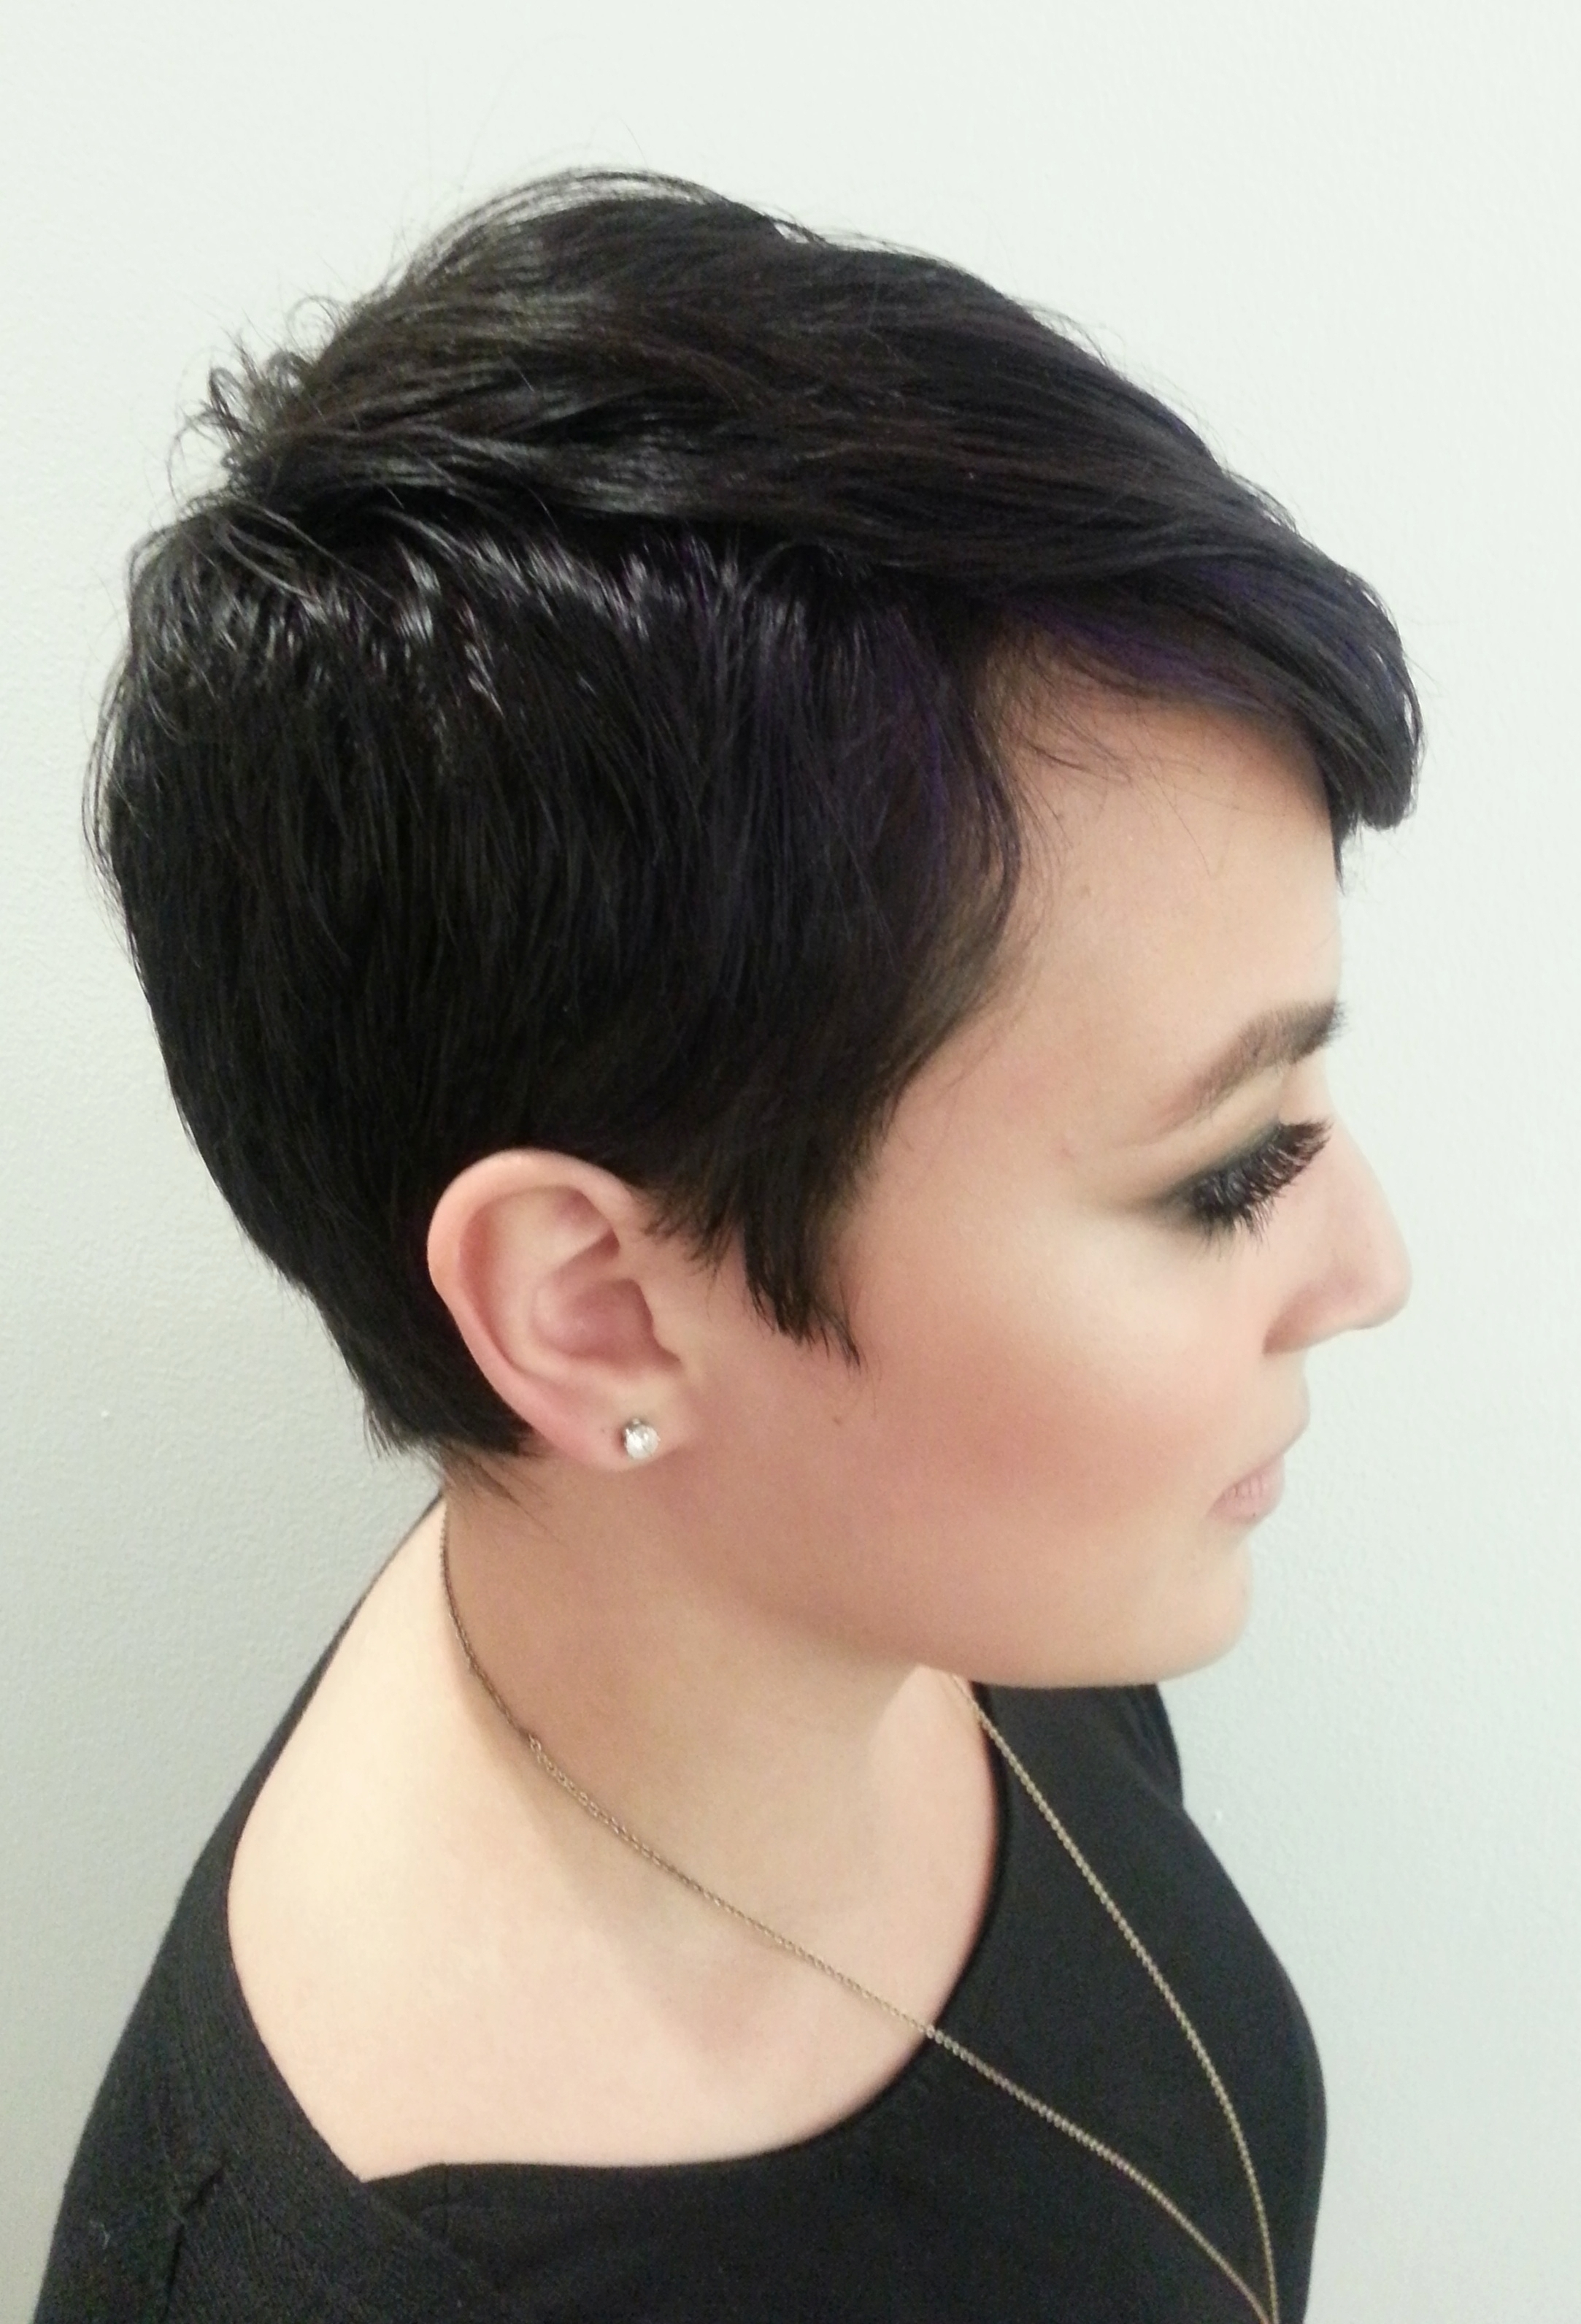 Image Gallery Of Short Pixie Hairstyles For Thick Hair View 12 Of